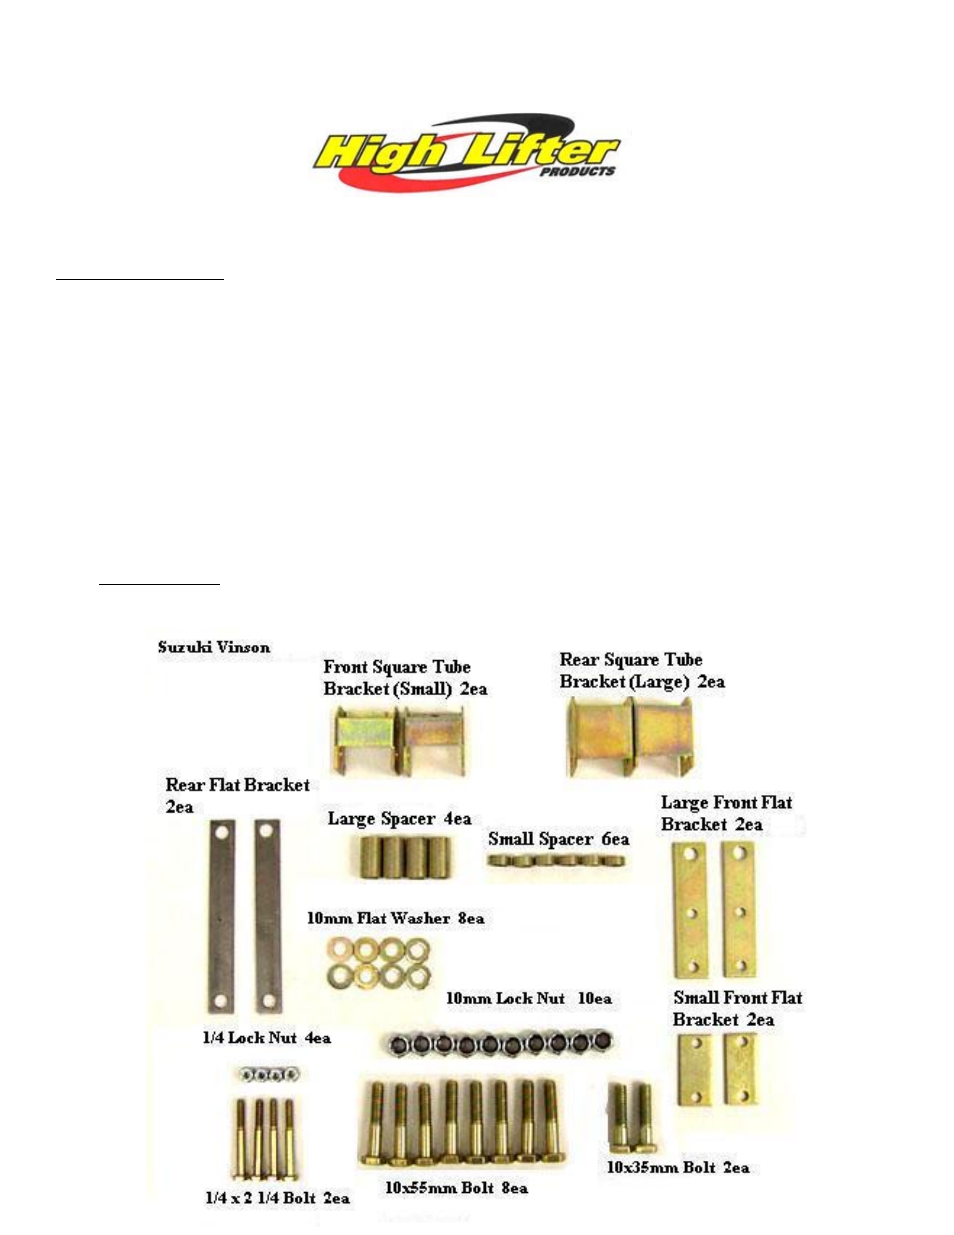 High Lifter Lift Kit for Suzuki Vinson 500 with Tie Rods User Manual | 7  pages